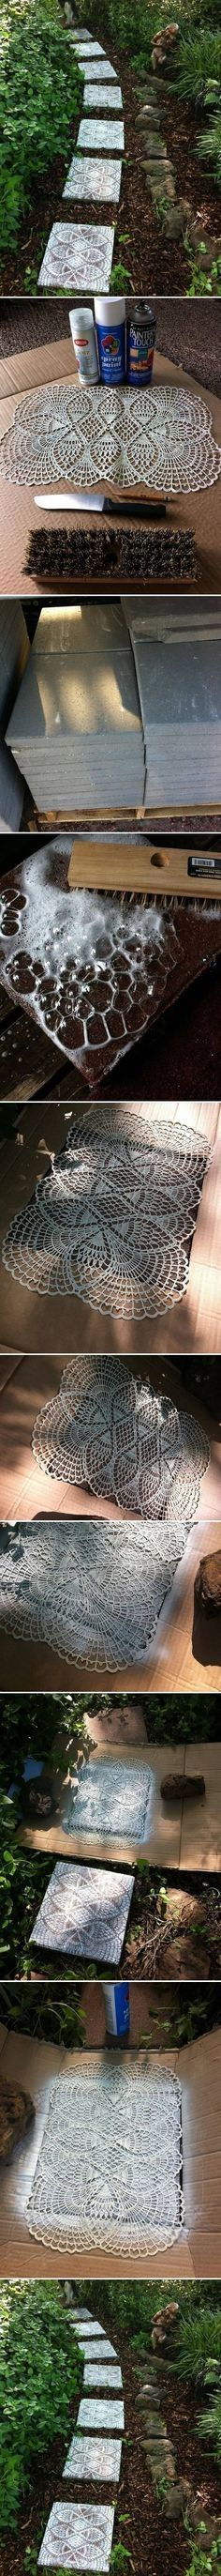 DIY Lace Like Stepping Stones